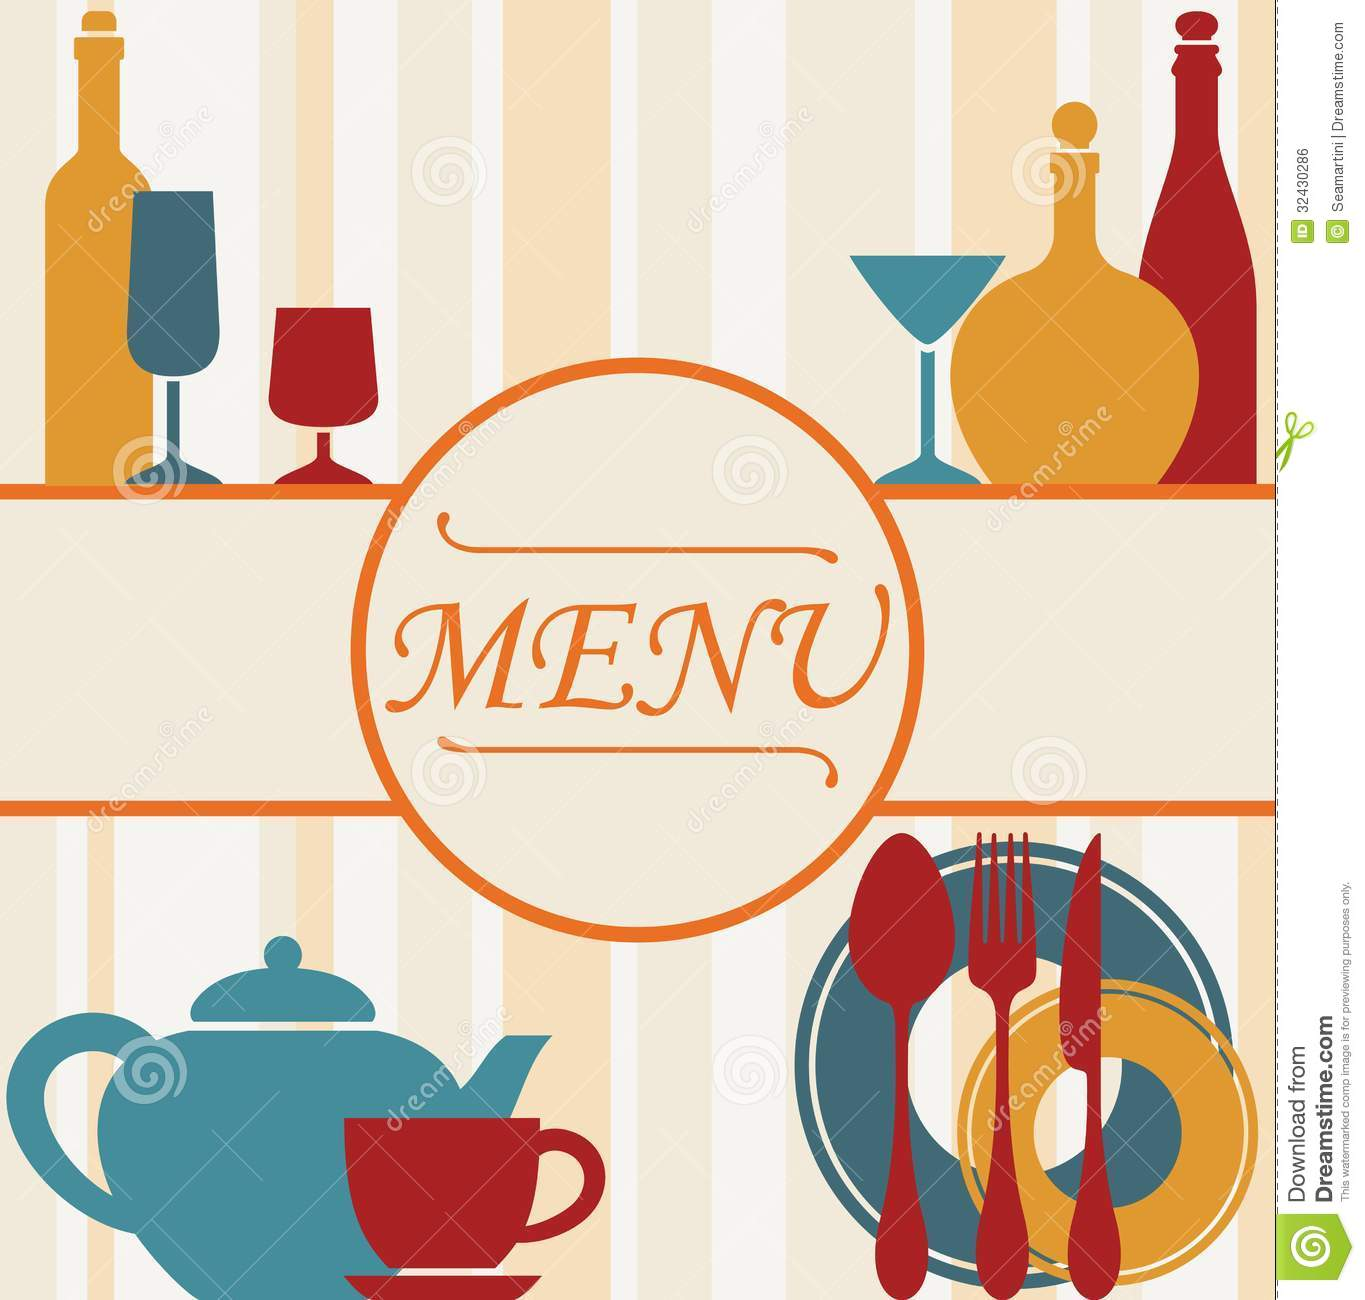 Design of restaurant menu background stock vector image